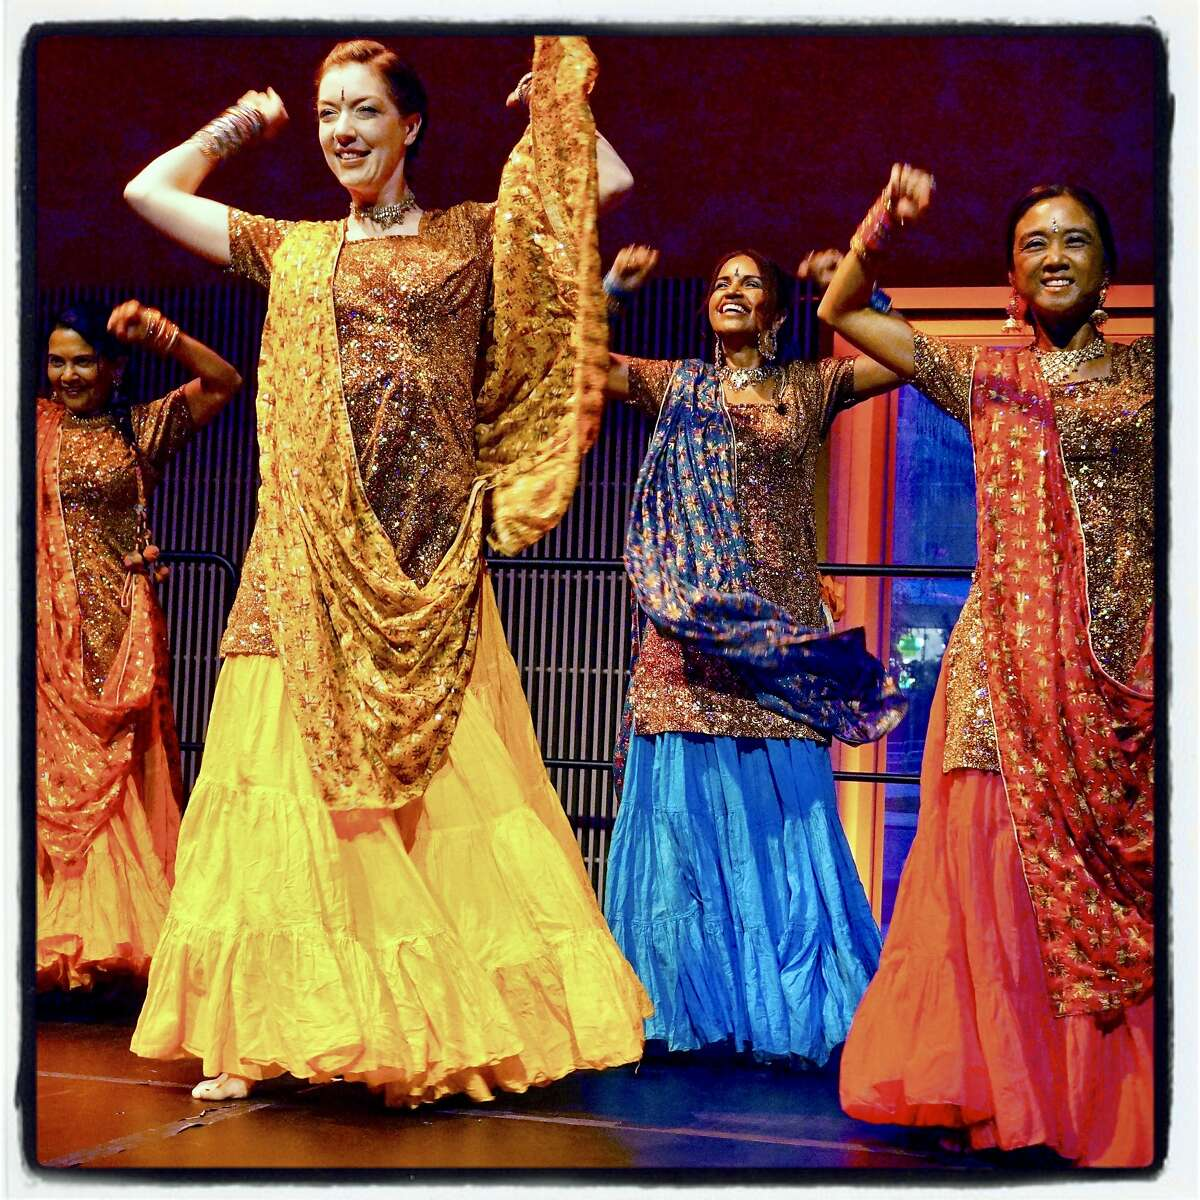 Non Stop Bhangra performs at YBCA's This is Not a Gala. March 30, 2019.